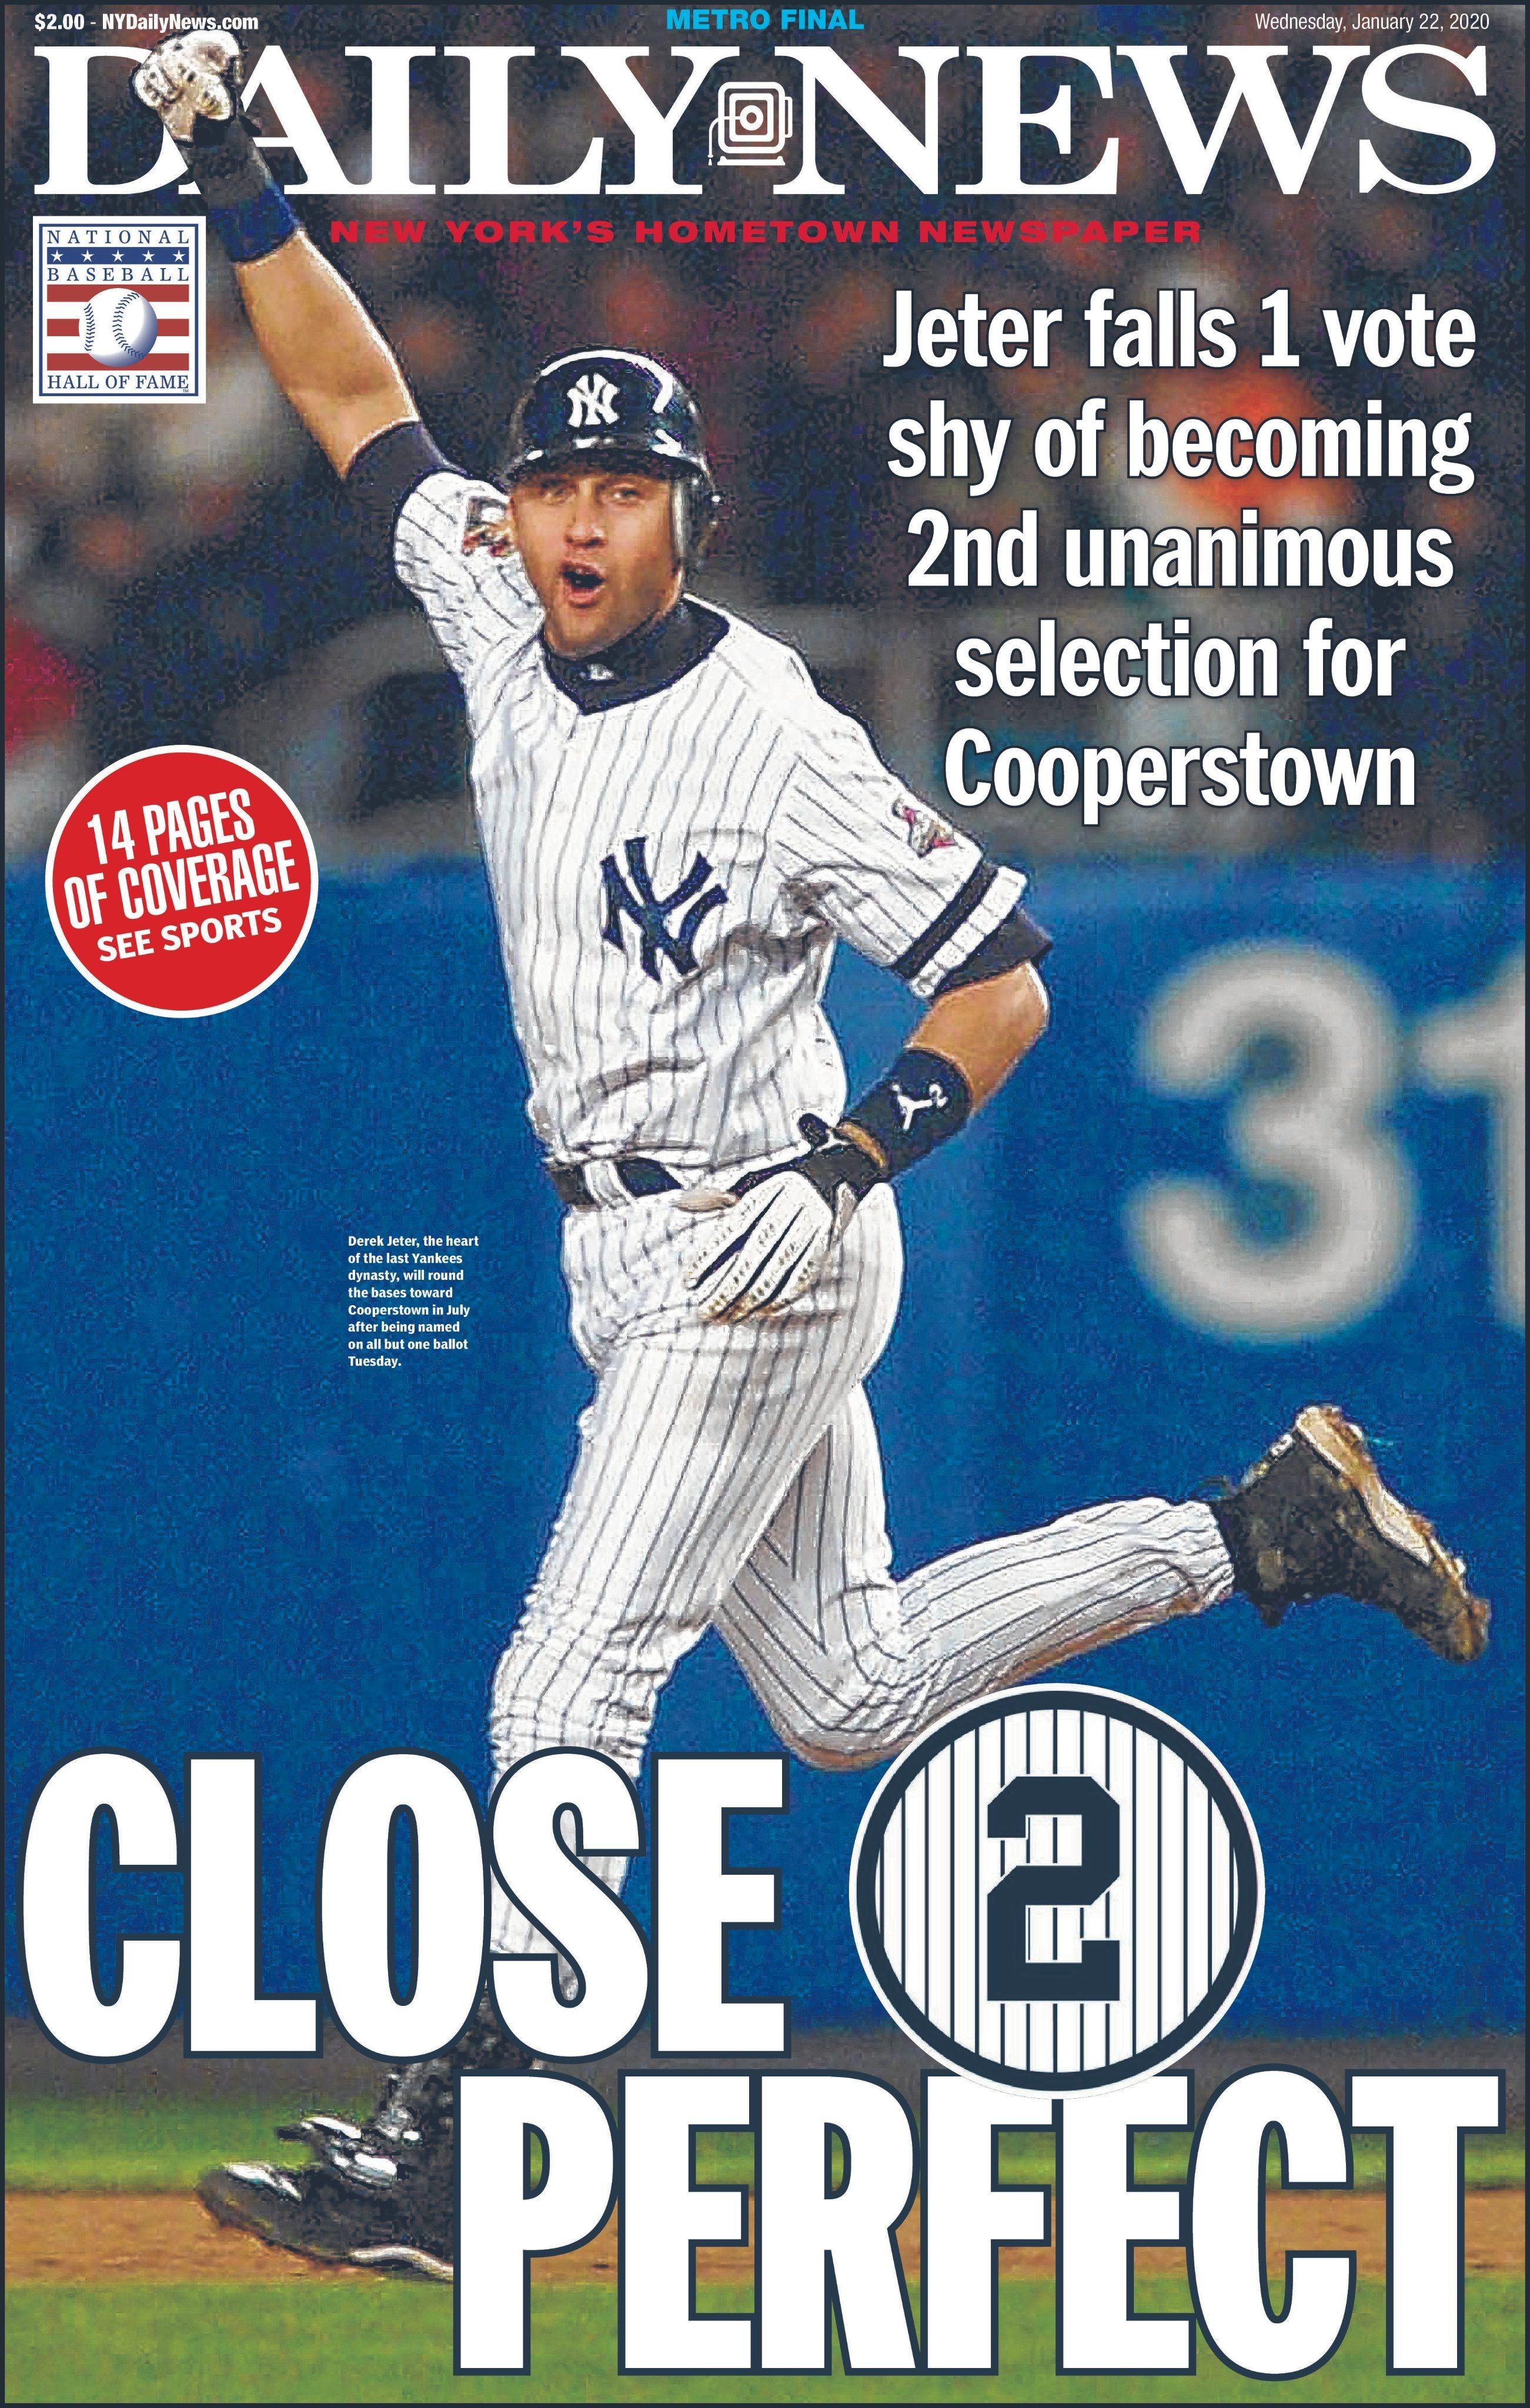 Pin By Vamato On Baseball Cards Photos In 2020 New York Yankees Ny Yankees Derek Jeter